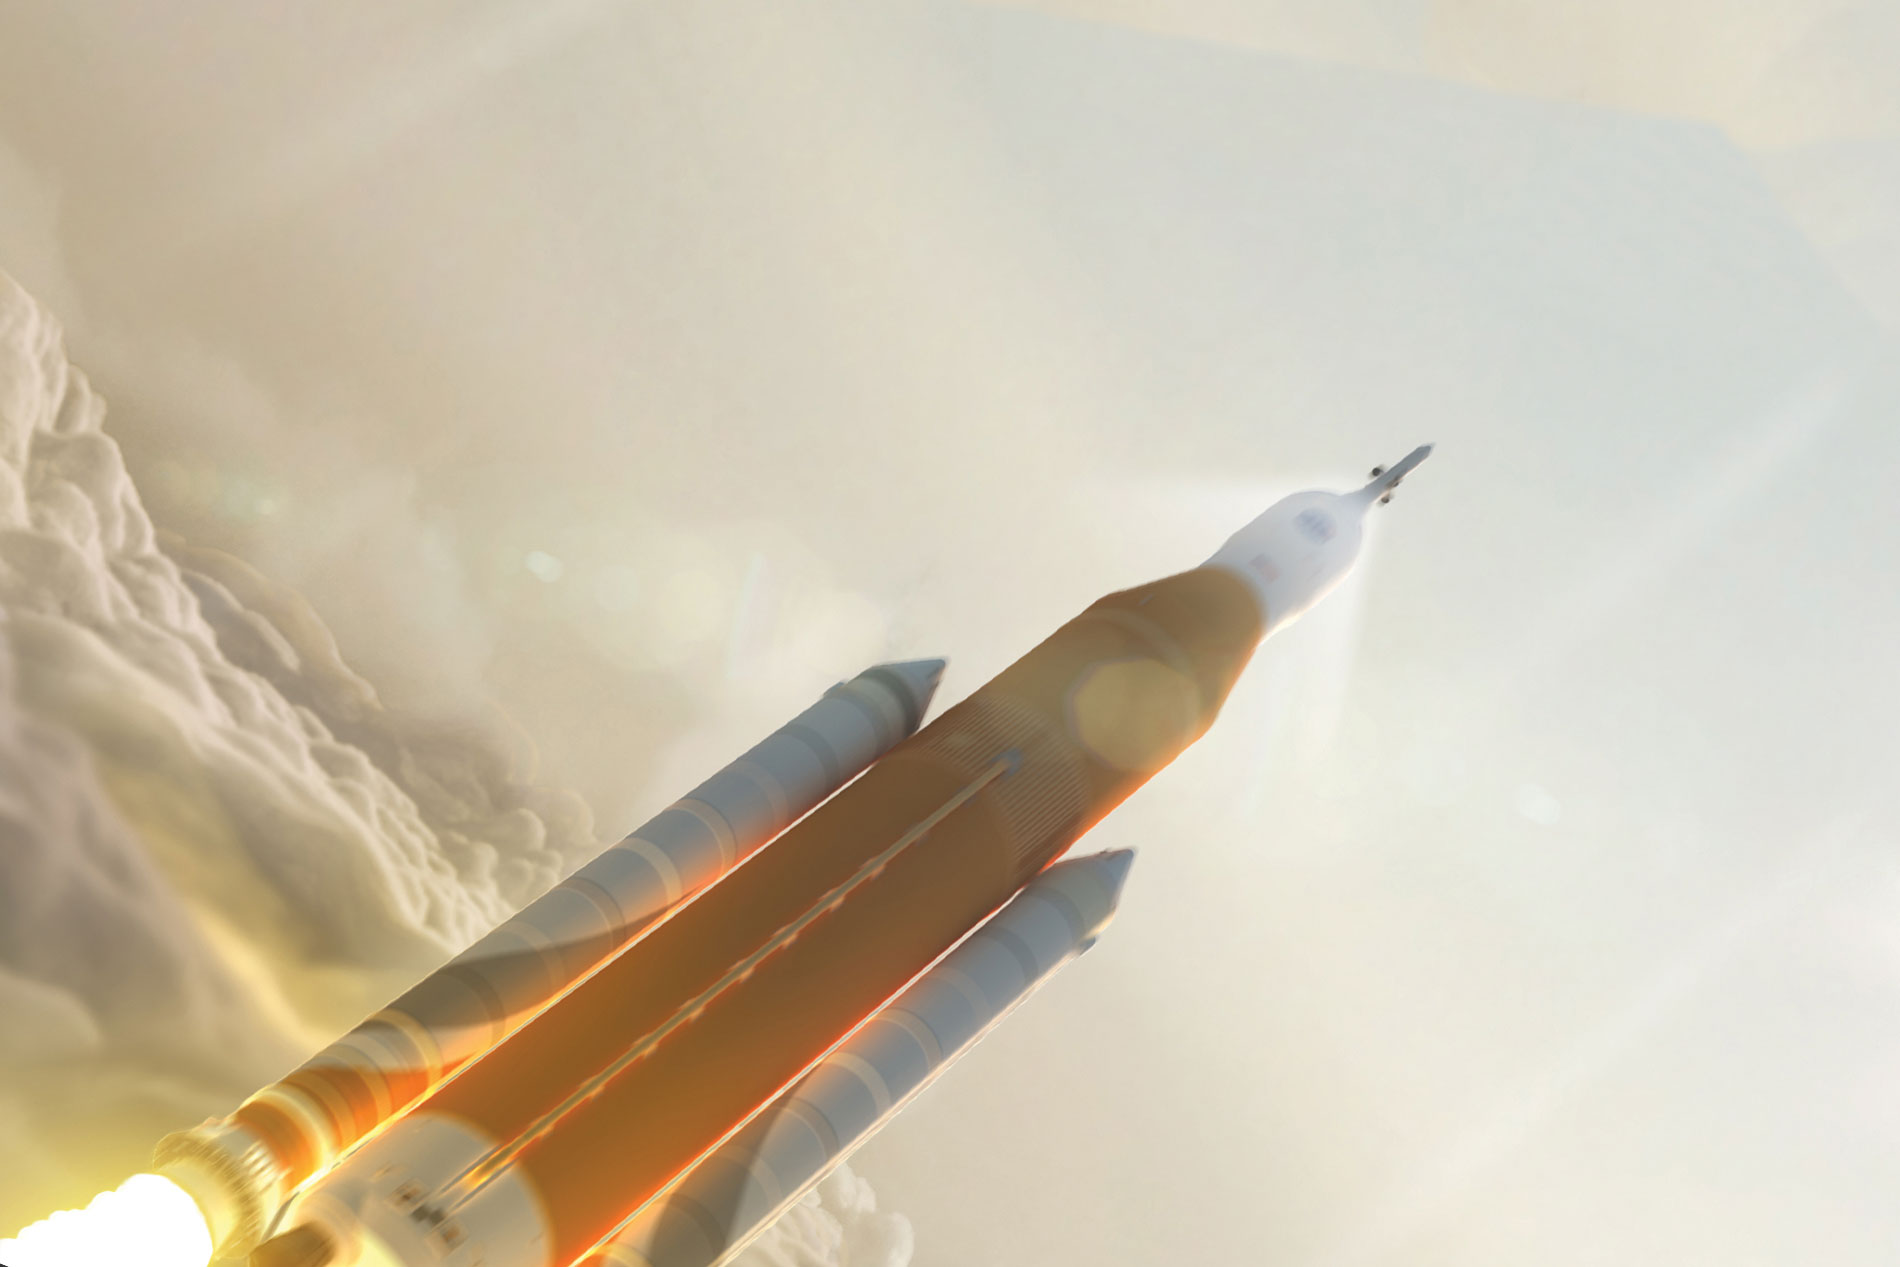 Cobham Wins Contract for Space Launch System Pyrotechnic Valves